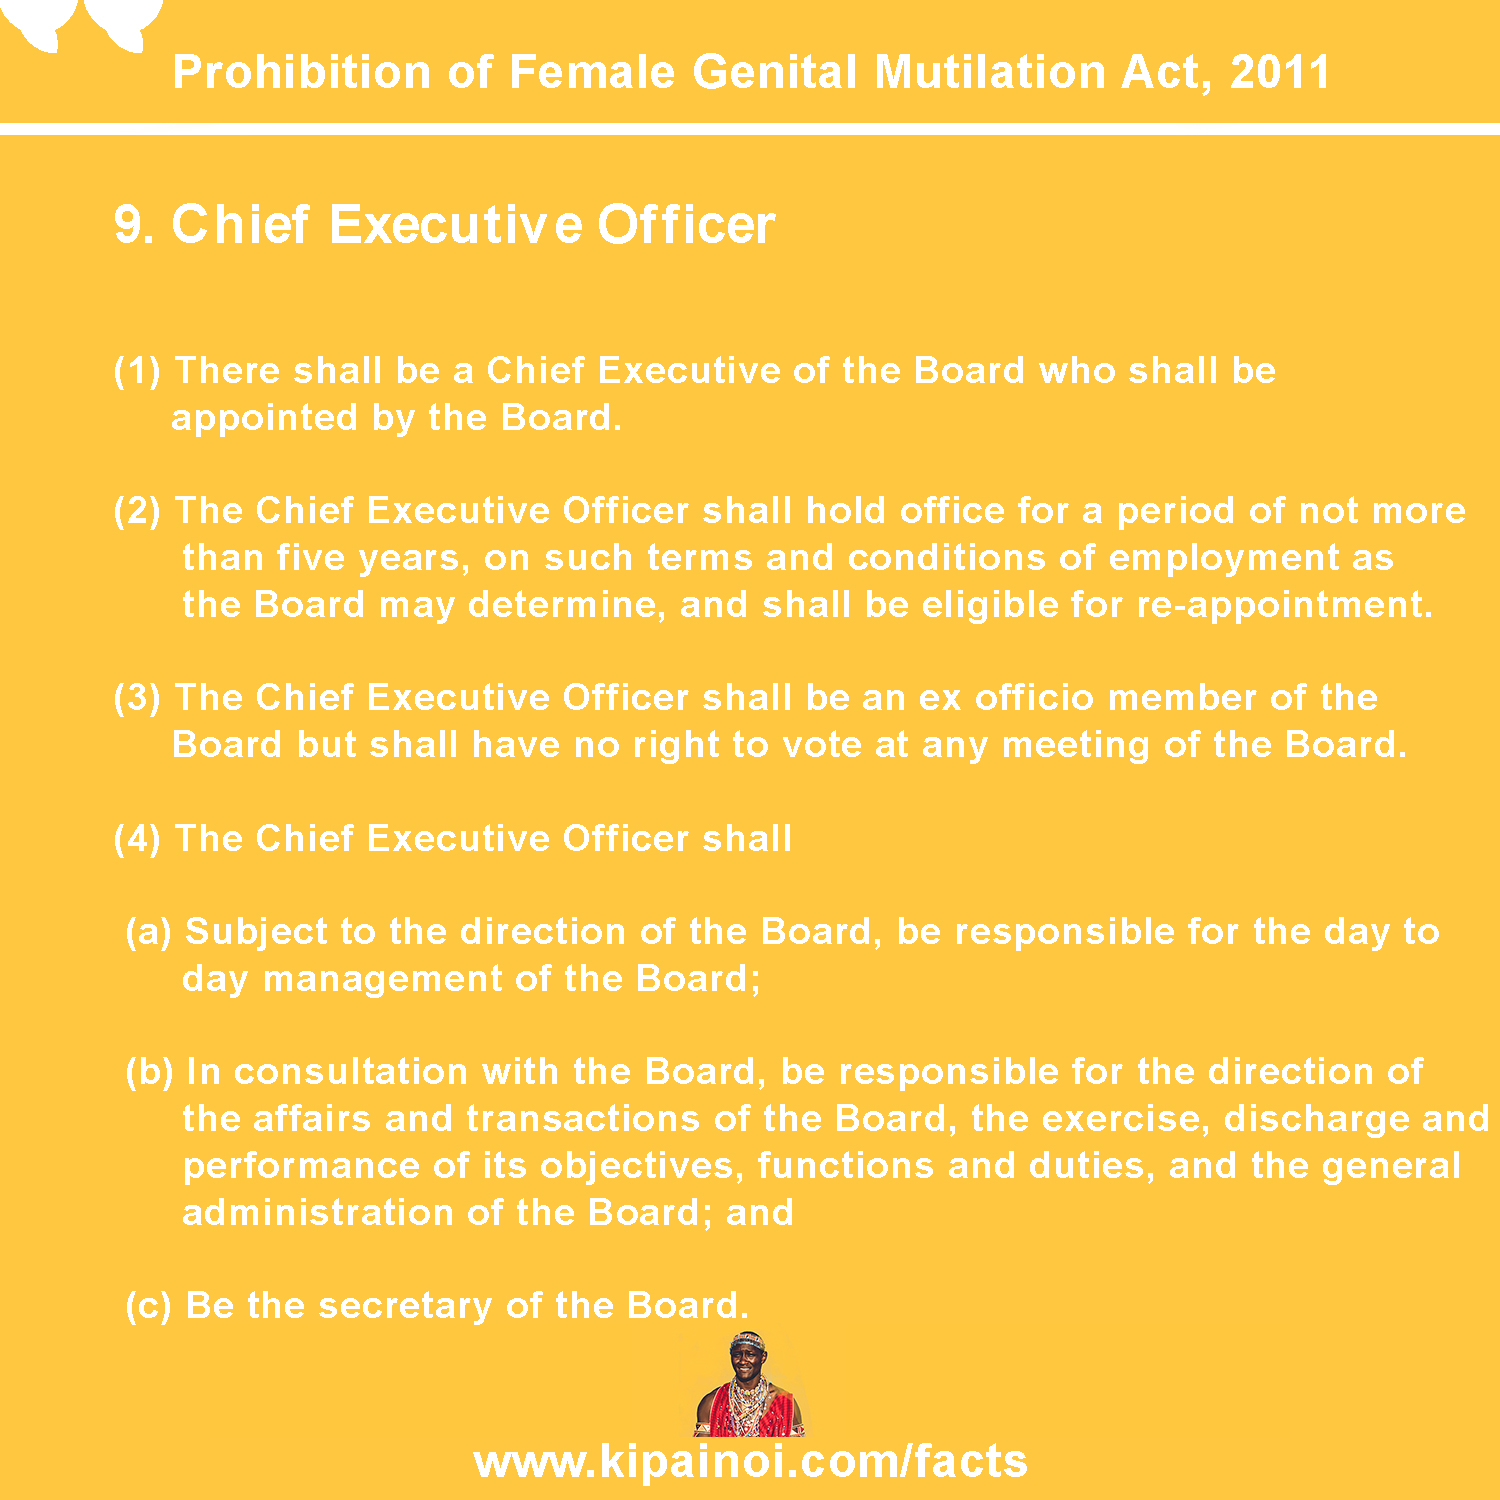 9. Chief Executive Officer